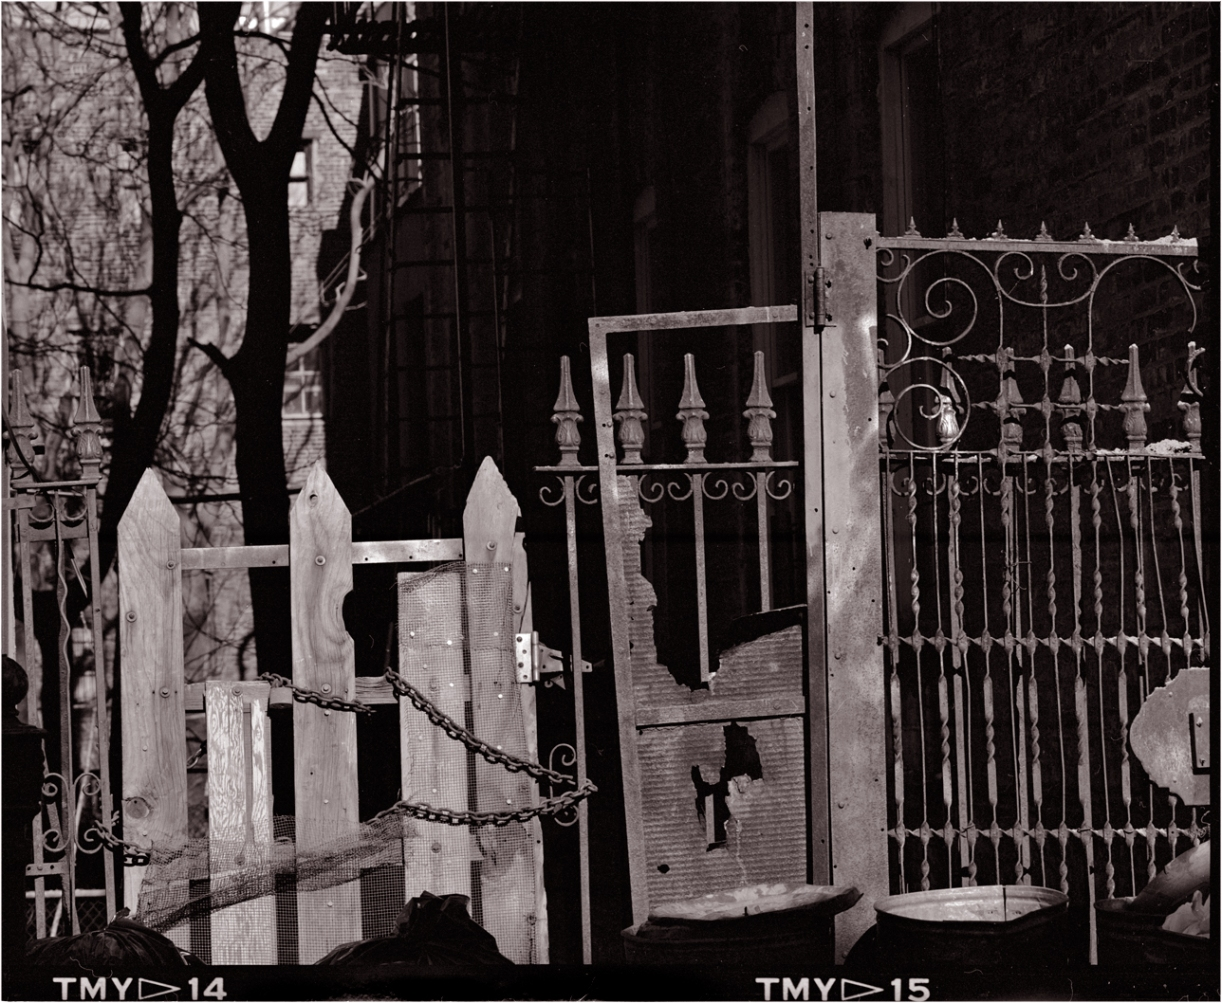 Harlem-Fences-gates-matt-weber